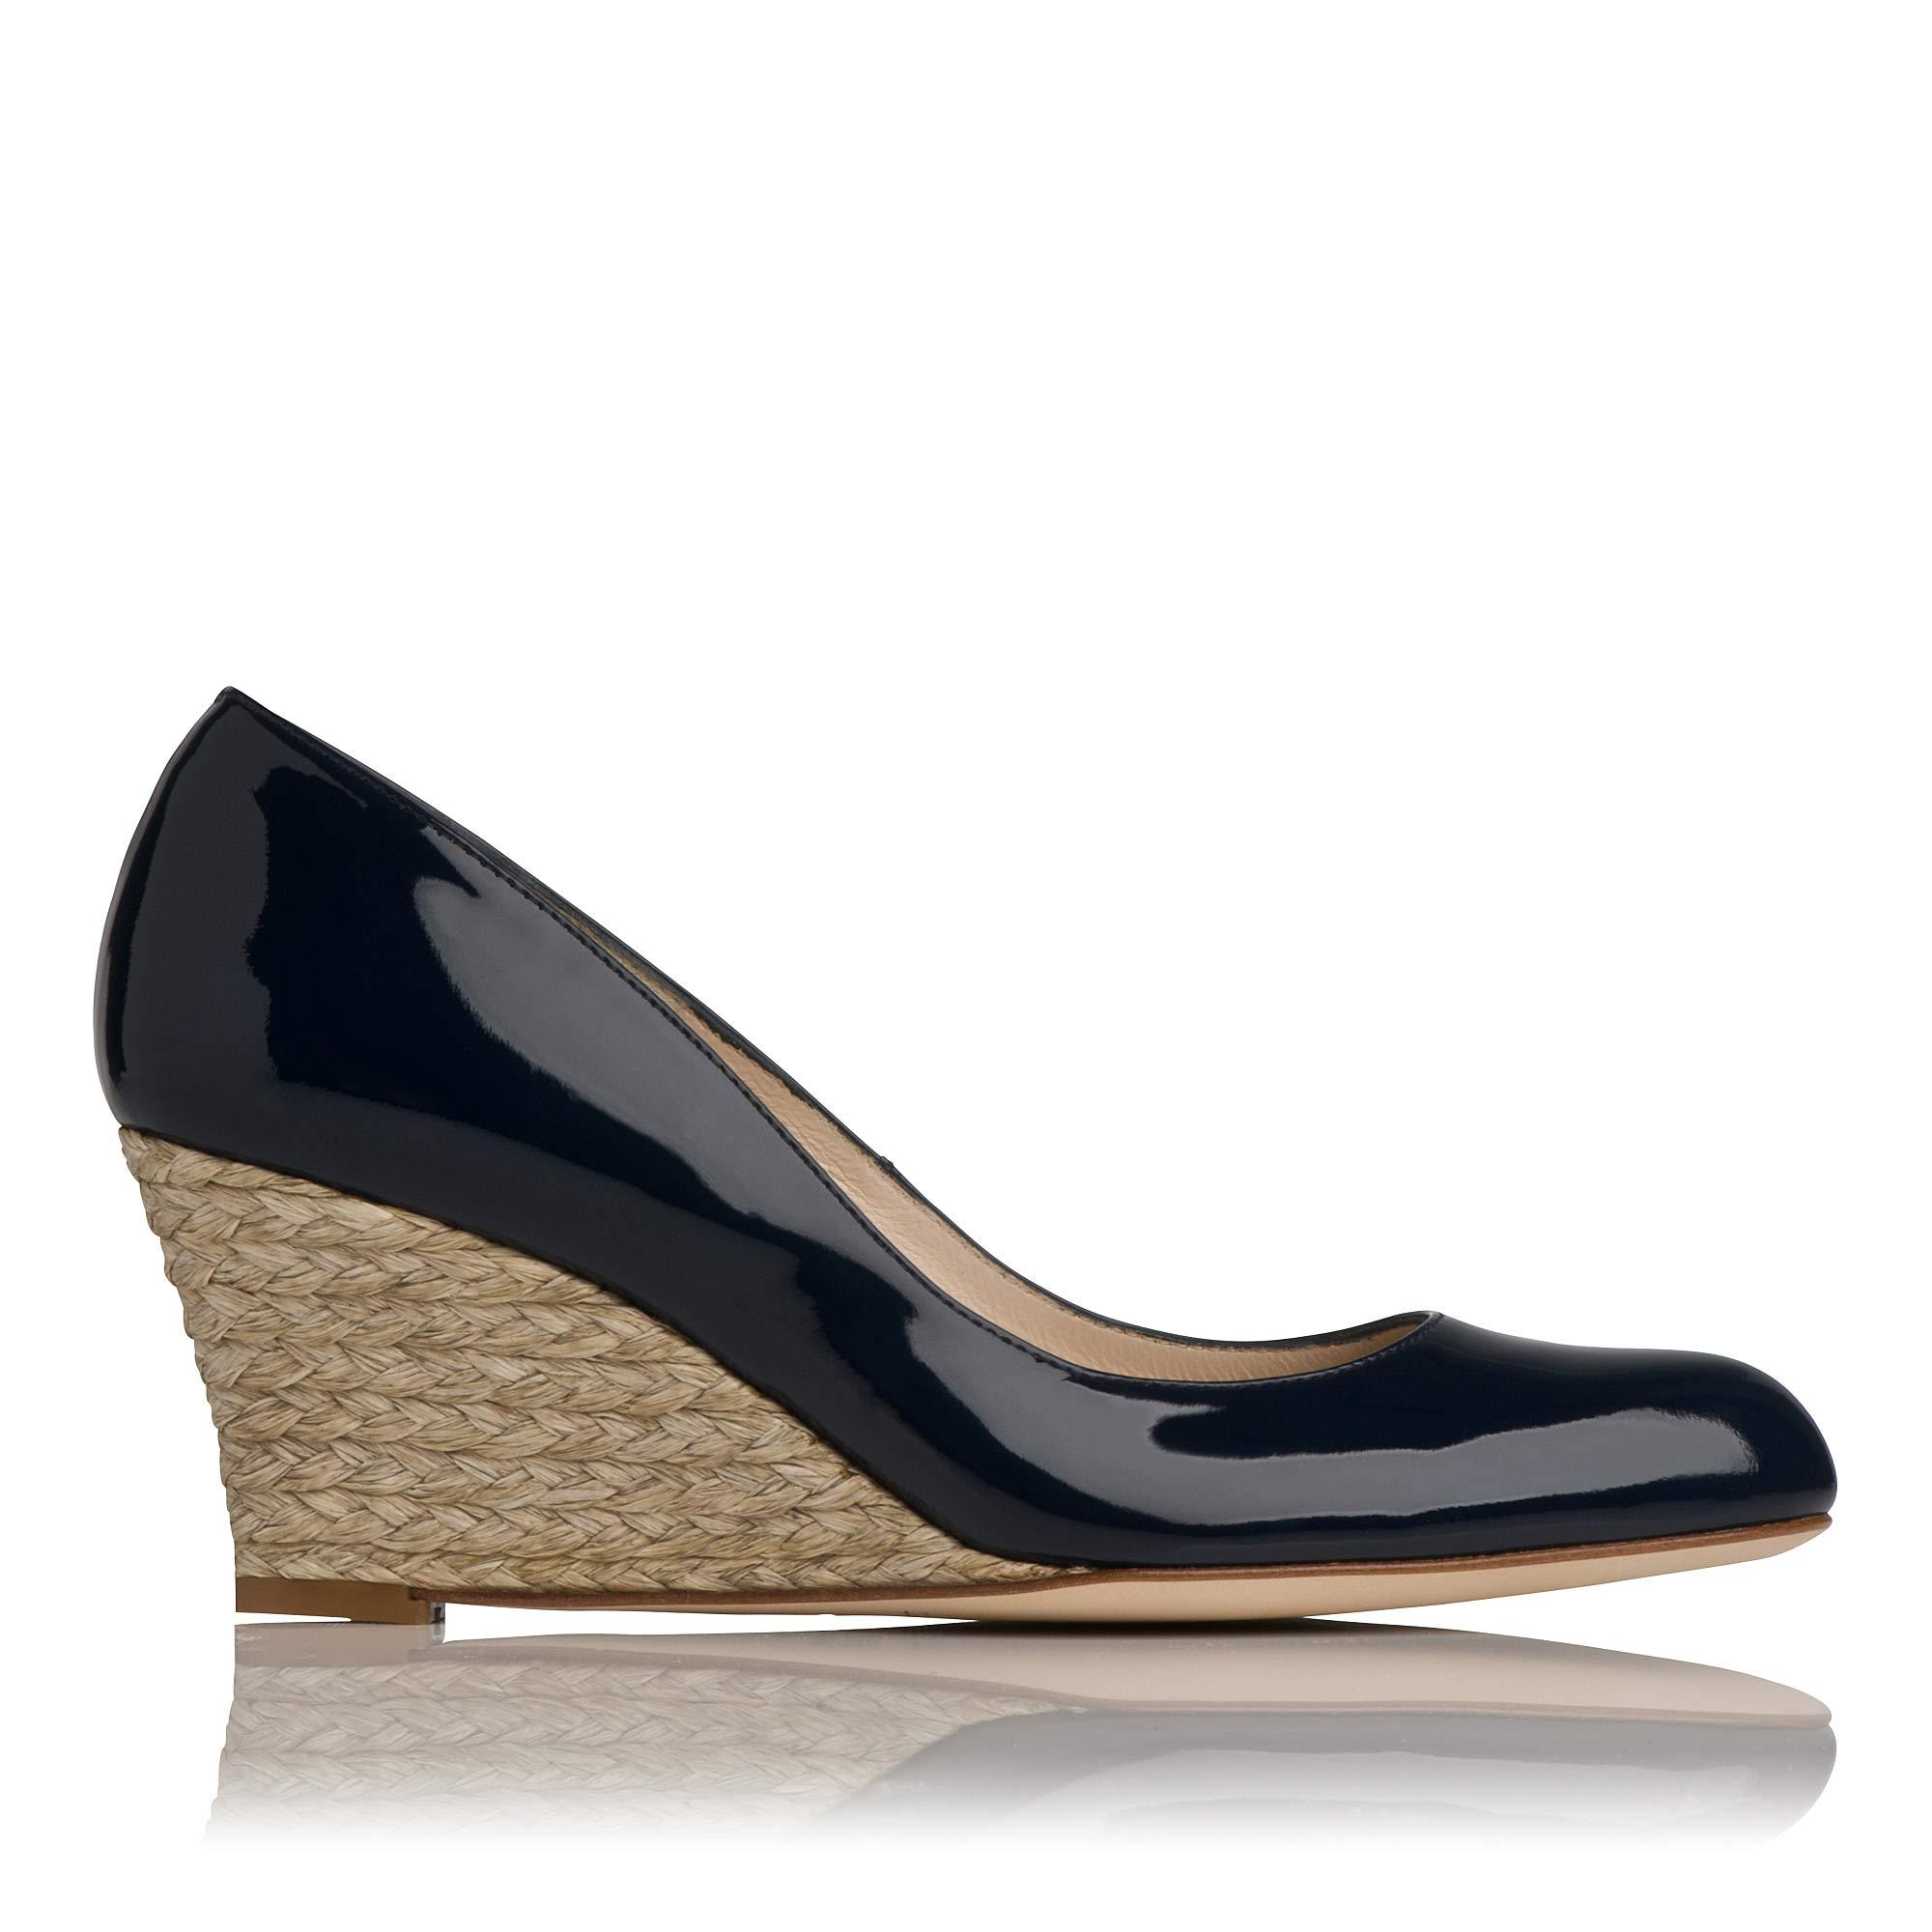 5a7fd4966663 Zella Navy Patent Leather Wedge